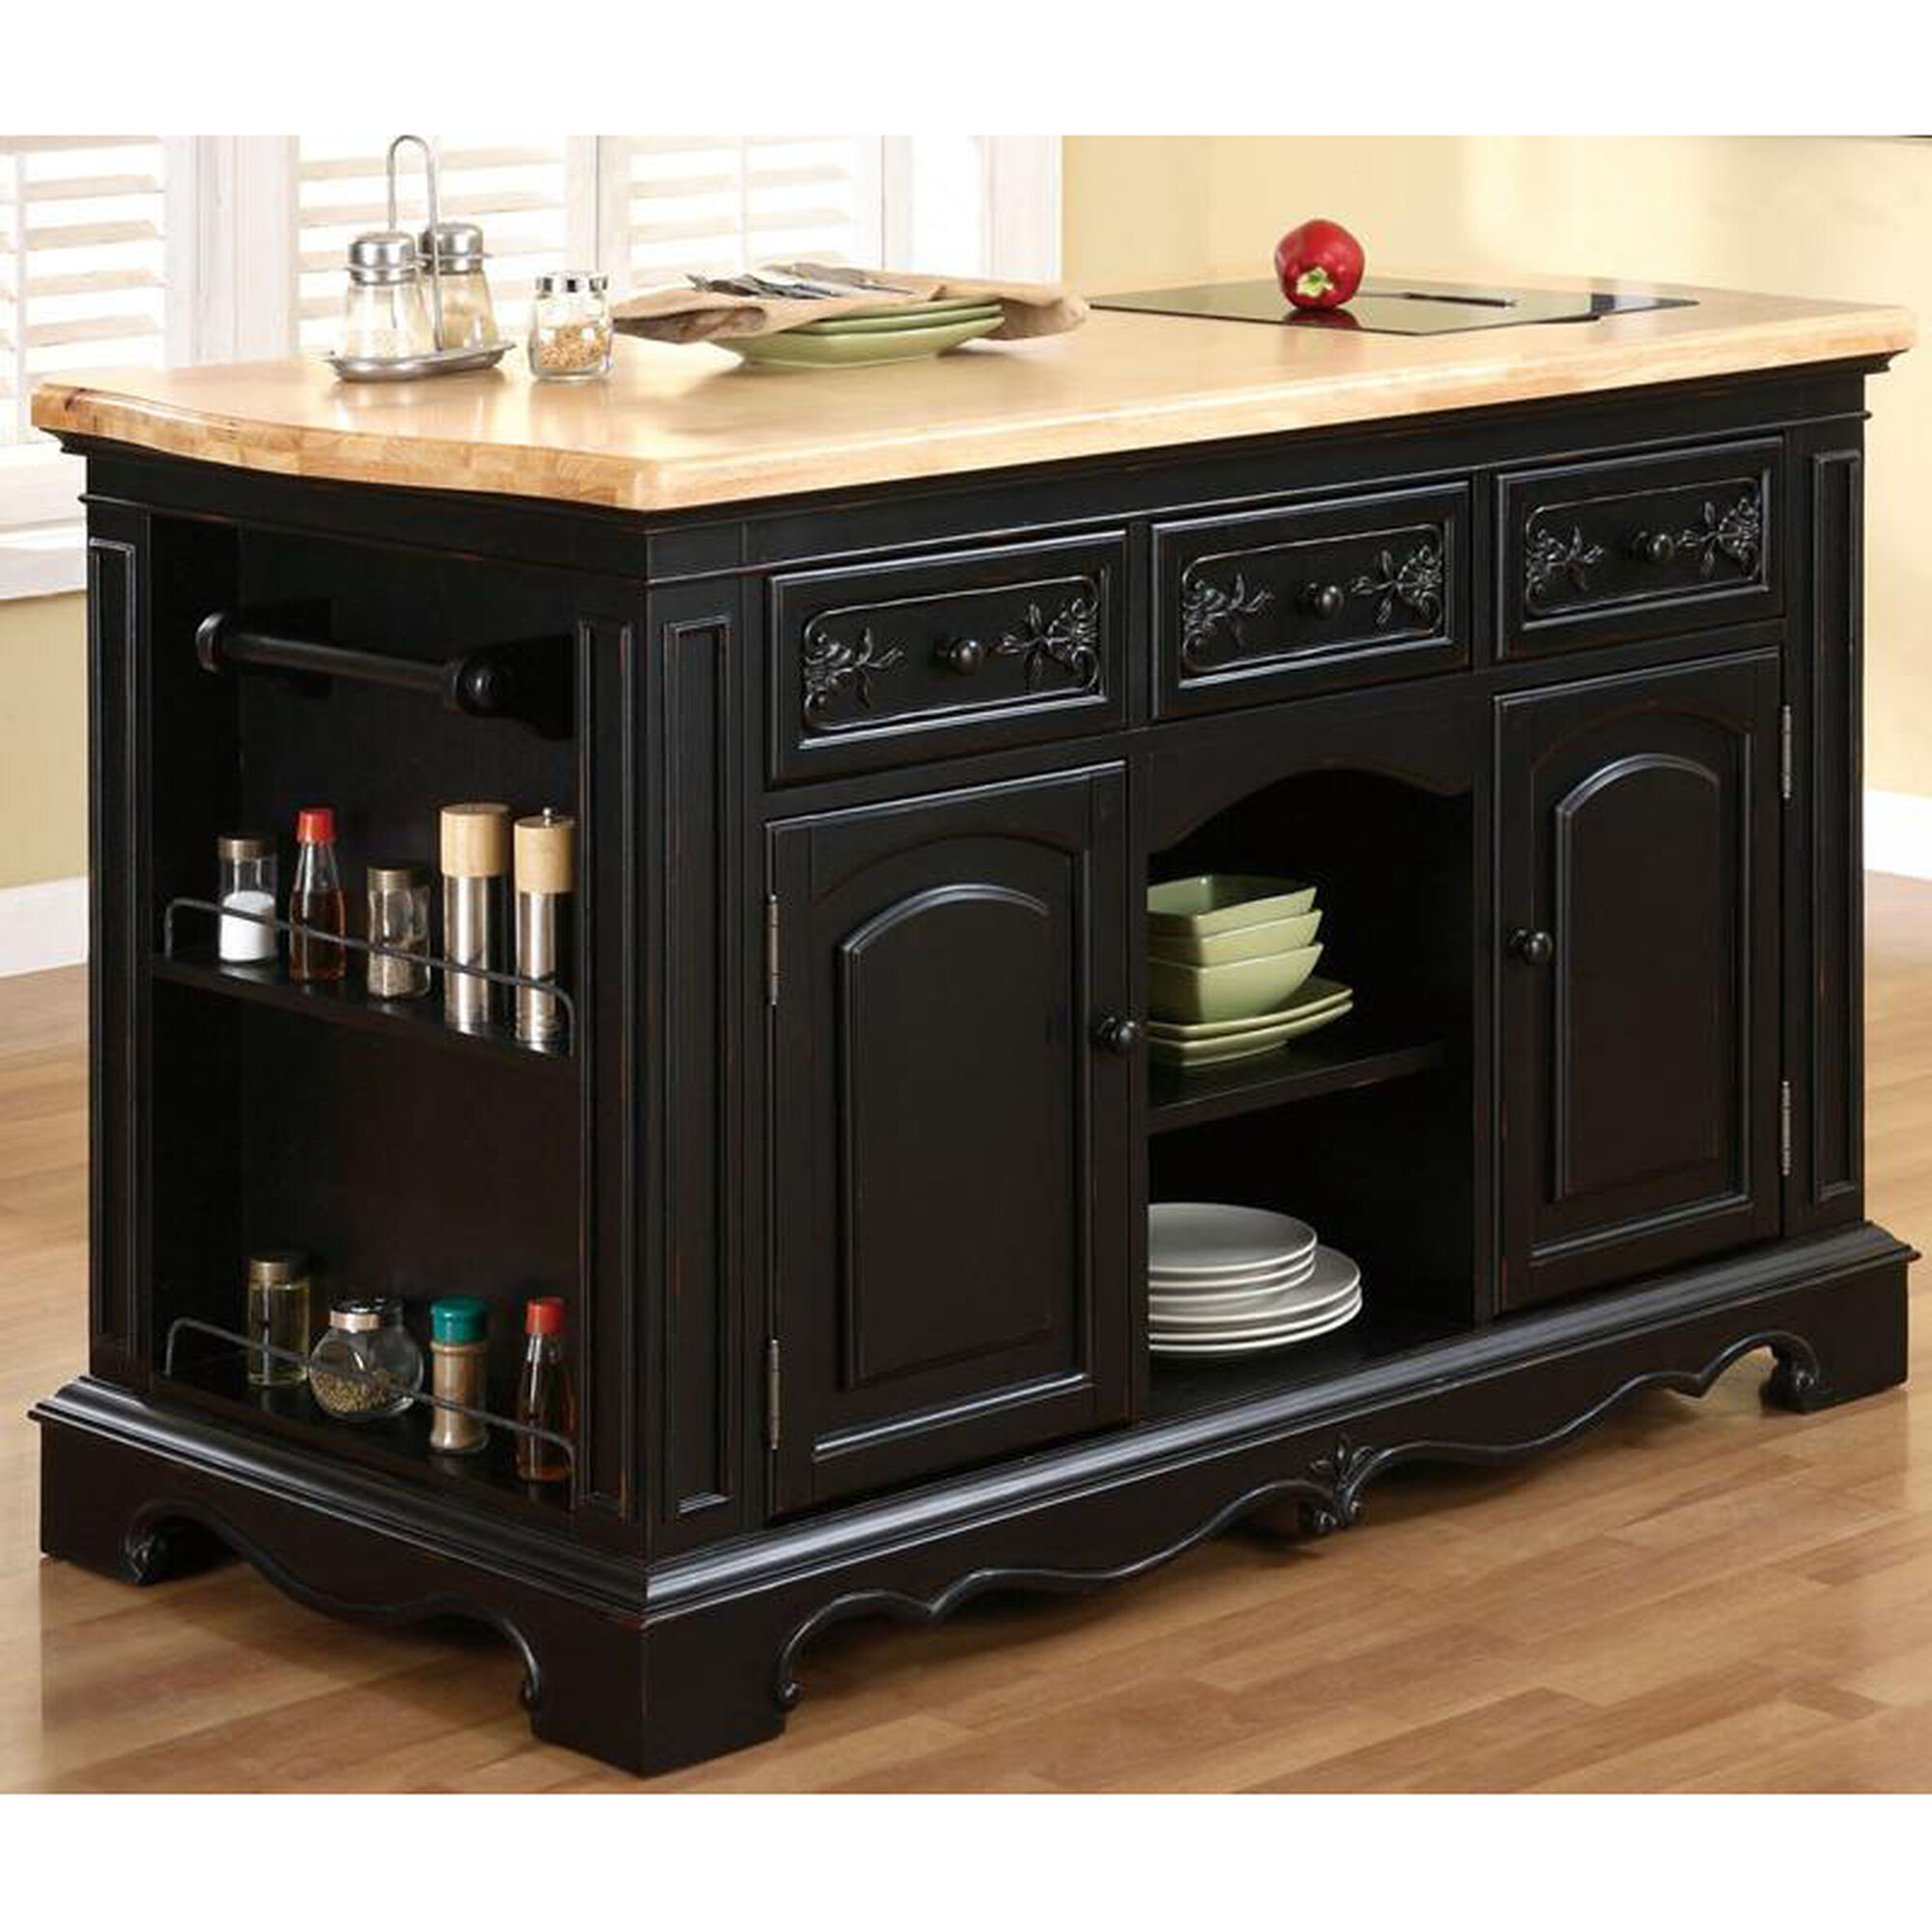 Pennfield Kitchen Island 318416  Bizchaircom. Sober Living Rooms For Rent. Living Room Furniture Vintage Style. New Living Rooms. Sherwin Williams Comfort Gray Living Room. Home Decorating Ideas For Living Rooms. Side Tables Living Room. Blue Modern Living Room. Beige Turquoise Living Room